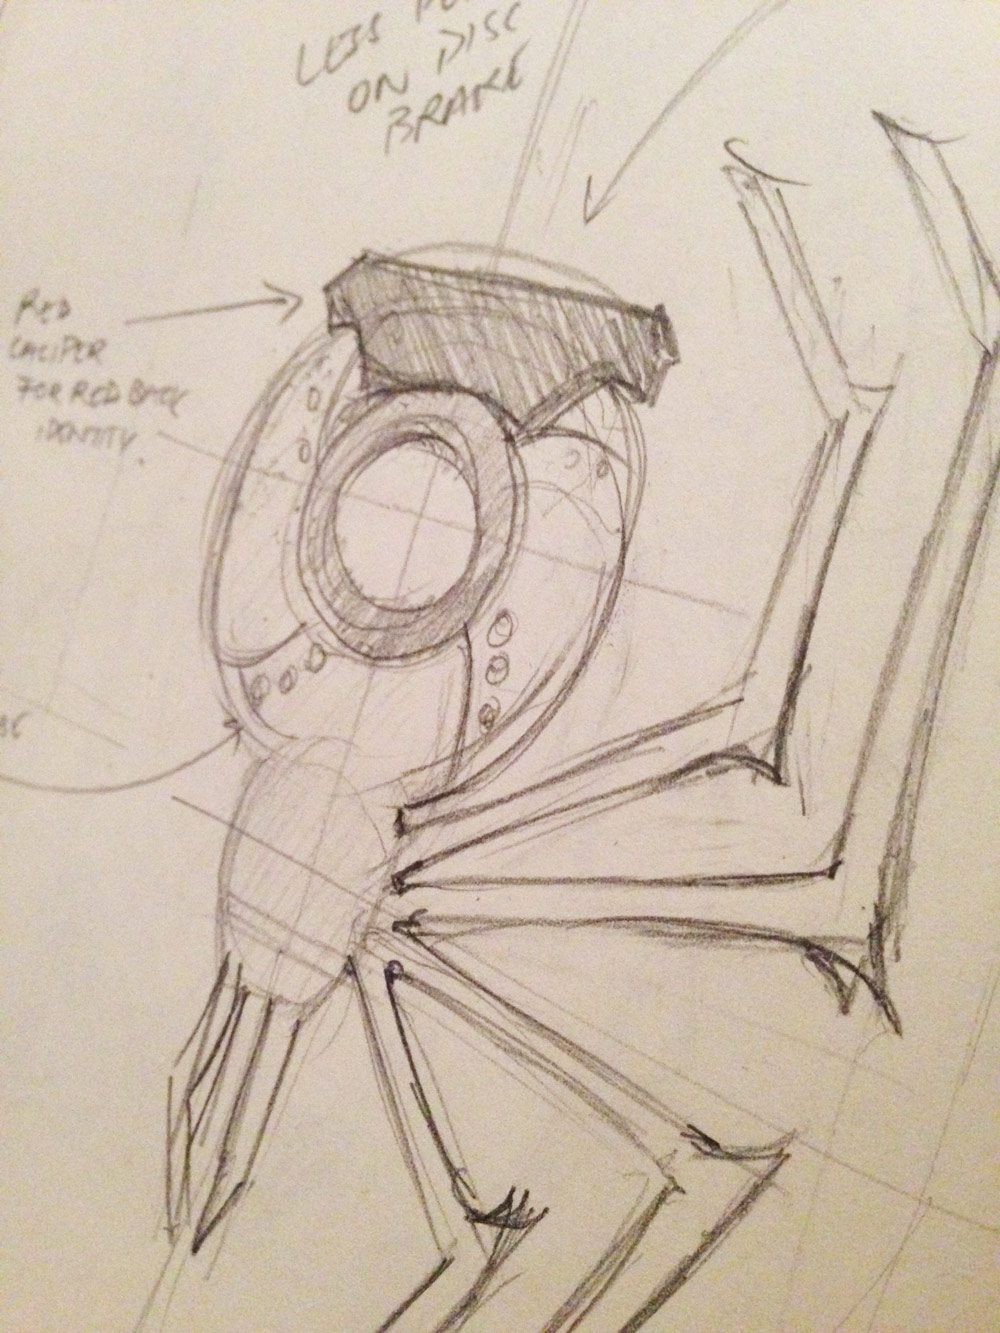 First concept sketch